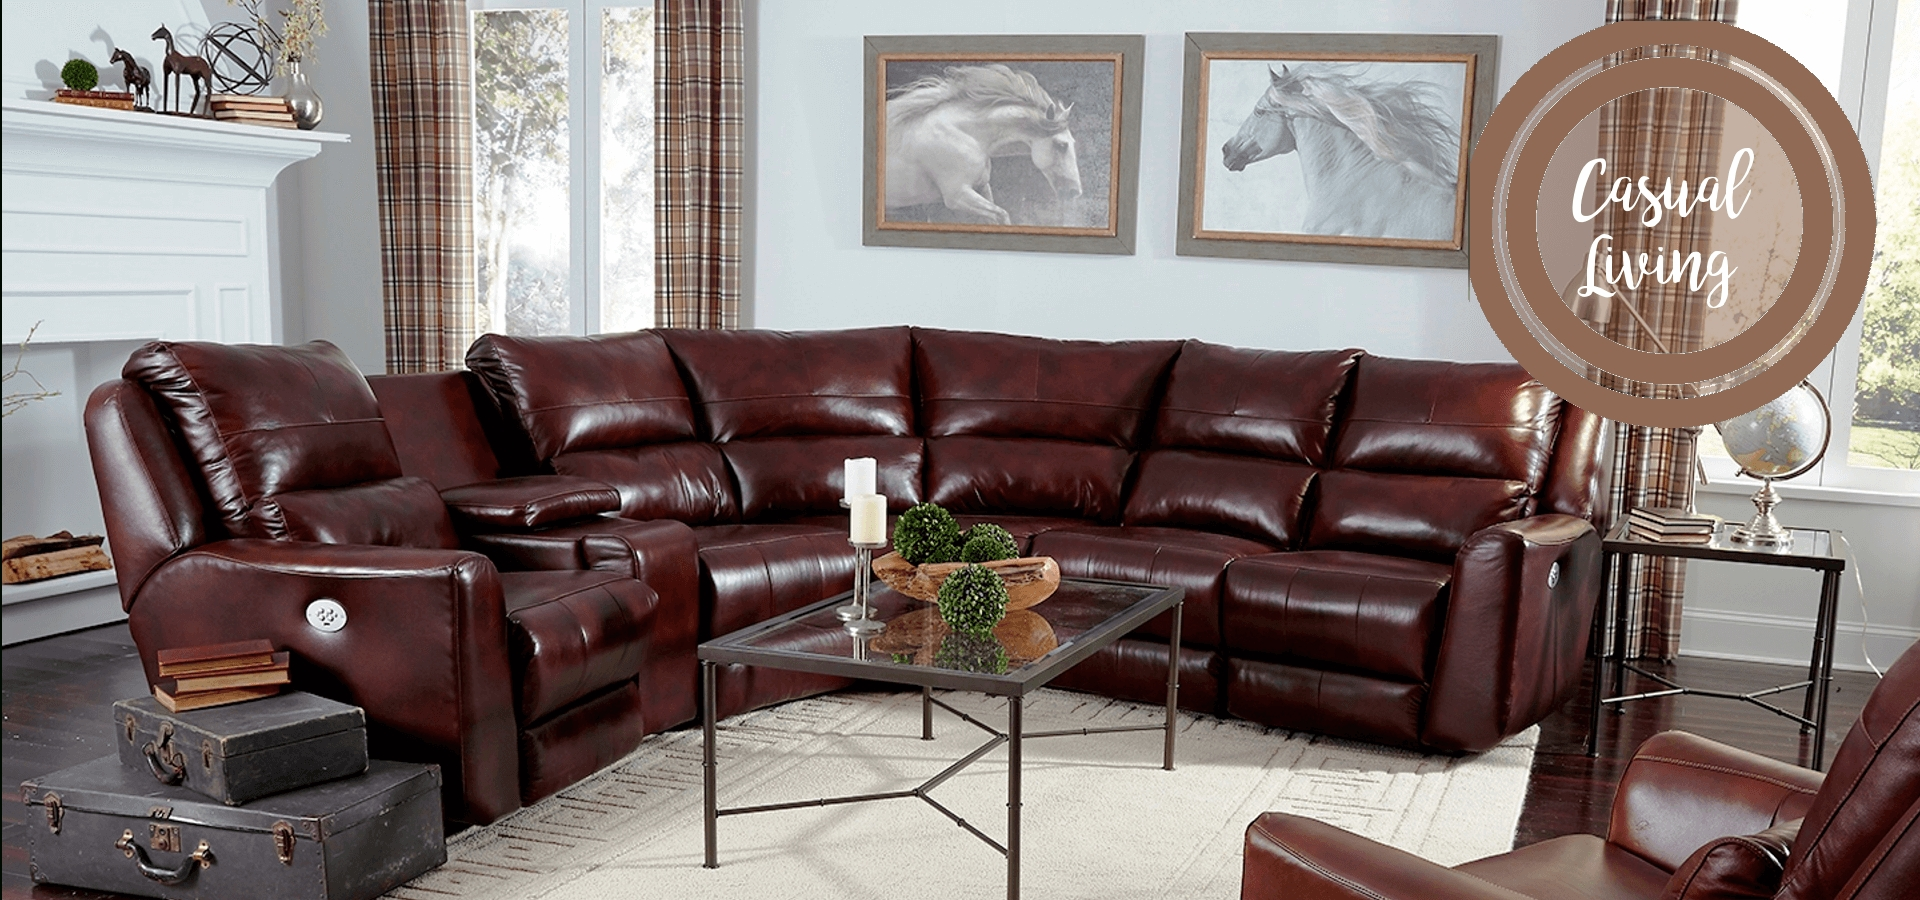 American Made Motion Furniture & Reclining Living Room Sets With Regard To Travis Cognac Leather 6 Piece Power Reclining Sectionals With Power Headrest & Usb (Image 4 of 25)